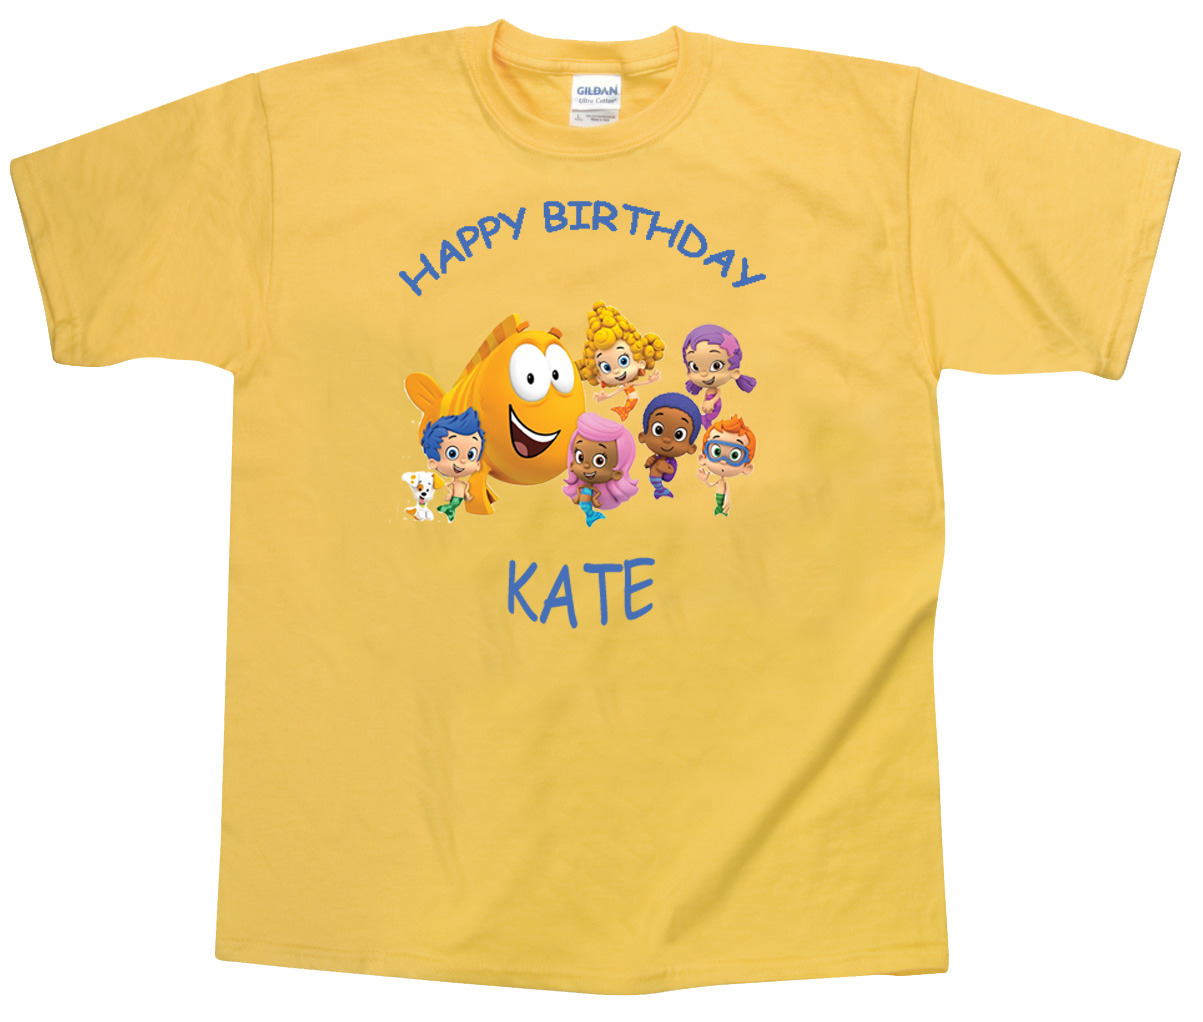 Primary image for Personalized Custom Bubble Guppies Yellow Birthday T-Shirt Gift Add Your Name #2